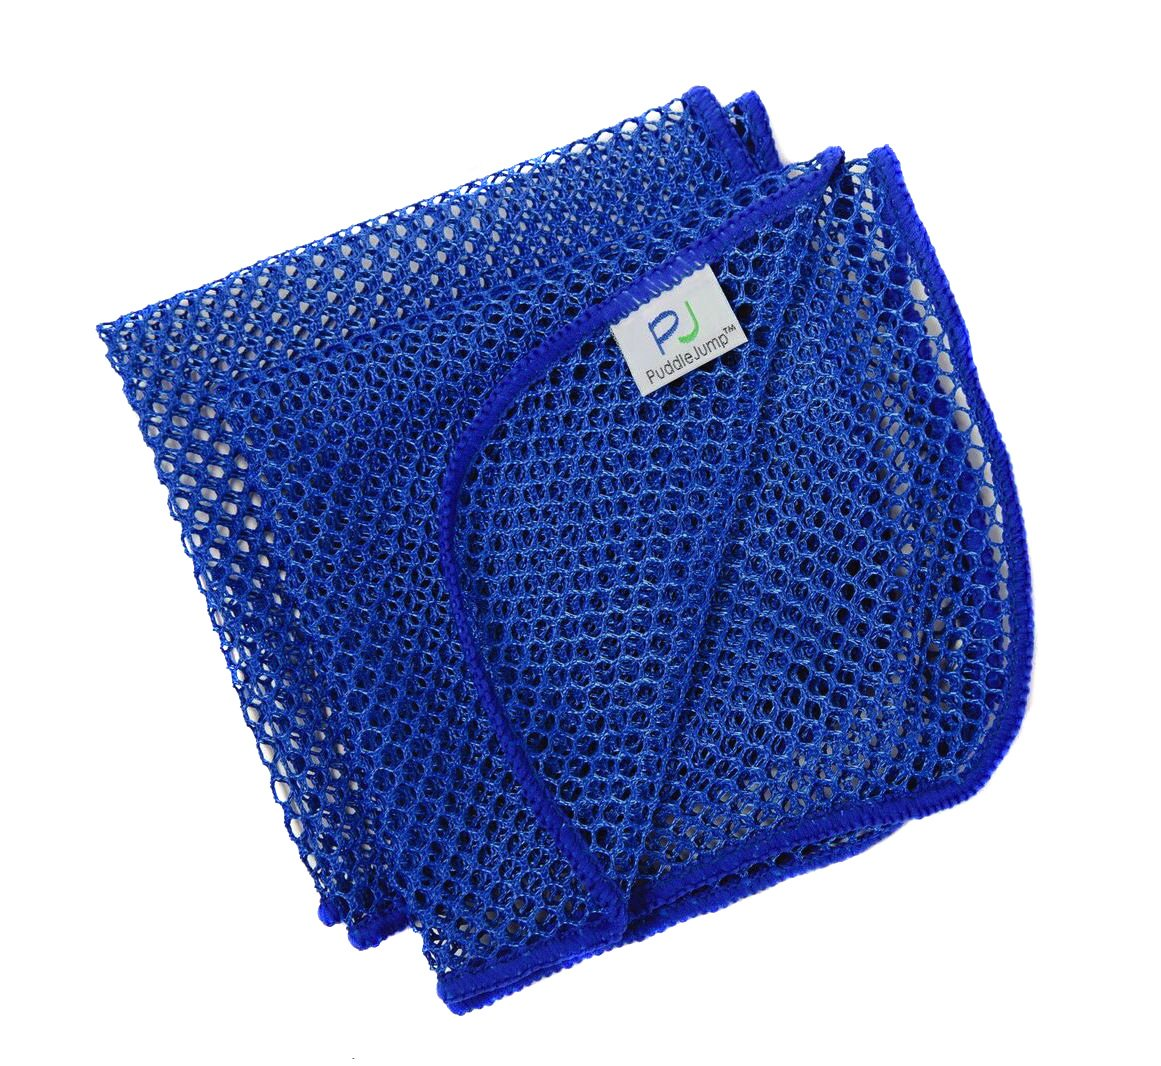 DishMesh Premium Kitchen Dish Towel and Scrubber Scourer Scratch Free Quick Wash and Dry No Odor Mesh Net for Dishes Counters Bacteria Resistant